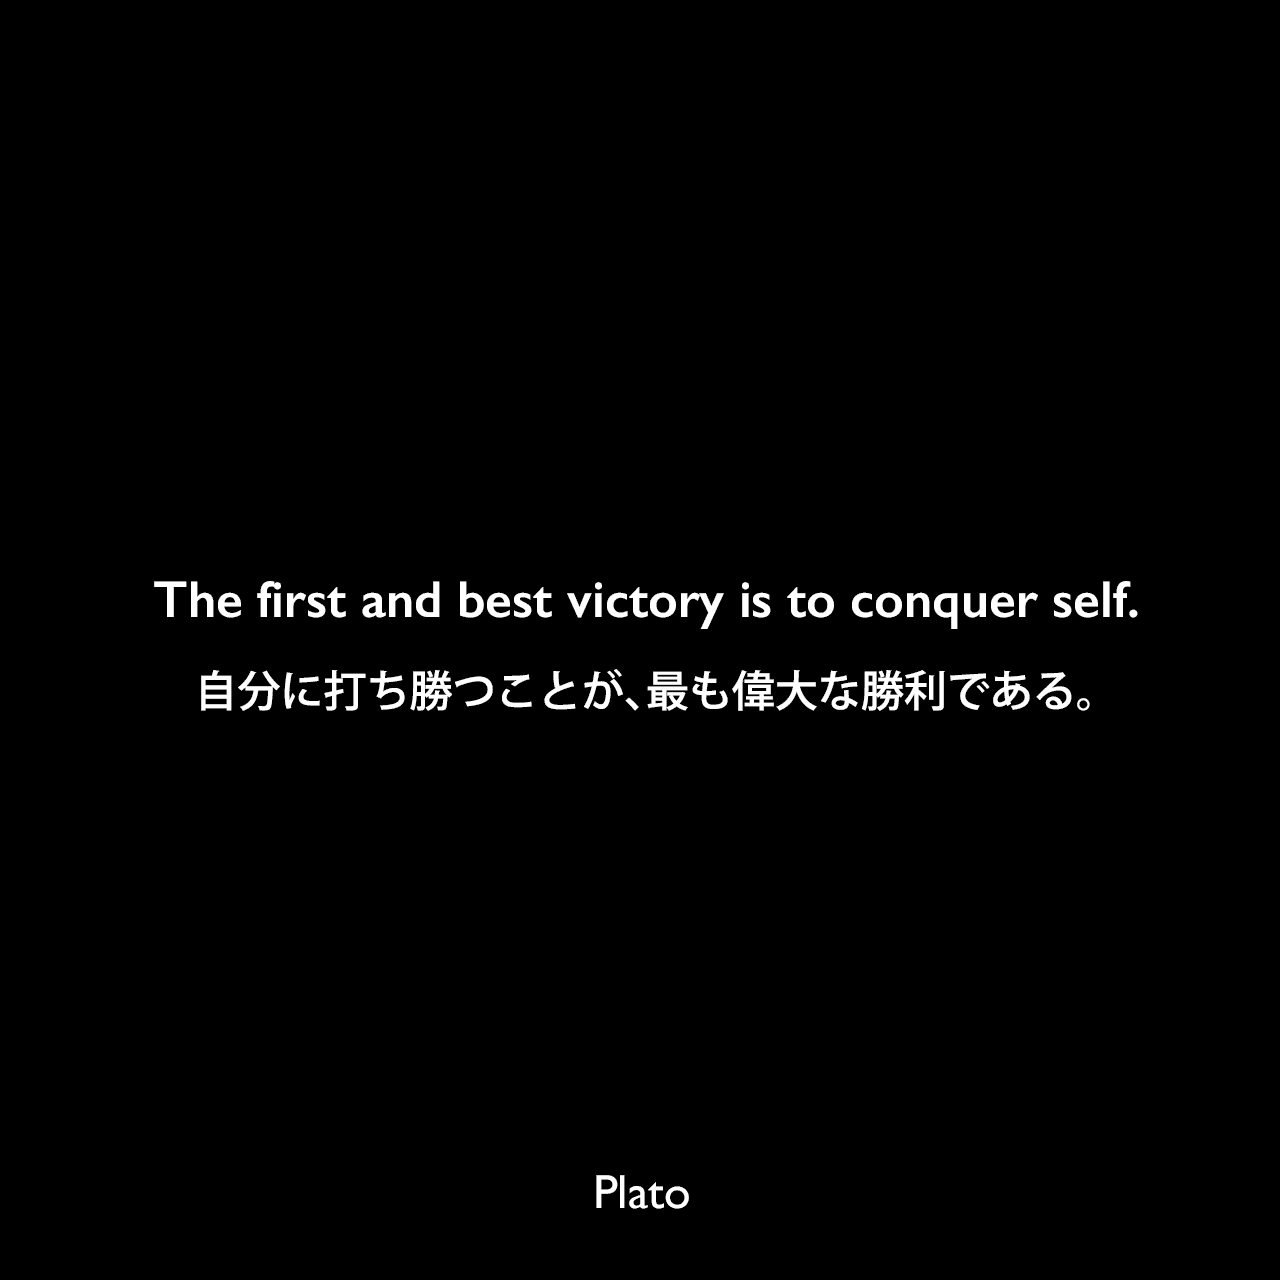 The first and best victory is to conquer self.自分に打ち勝つことが、最も偉大な勝利である。Plato